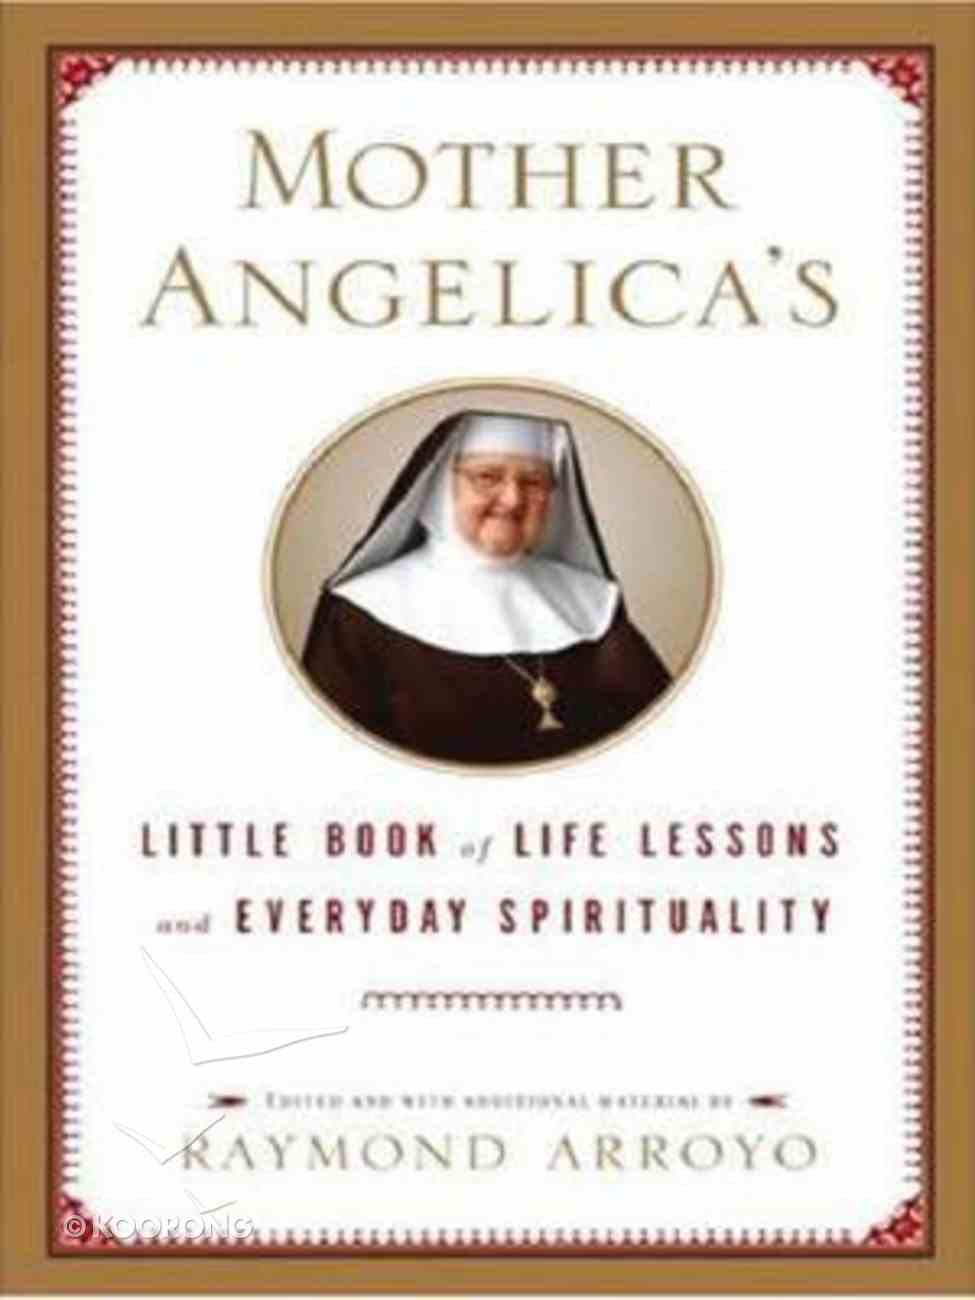 Mother Angelica's Little Book of Life Lessons and Everyday Spirituality (Large Print) Paperback